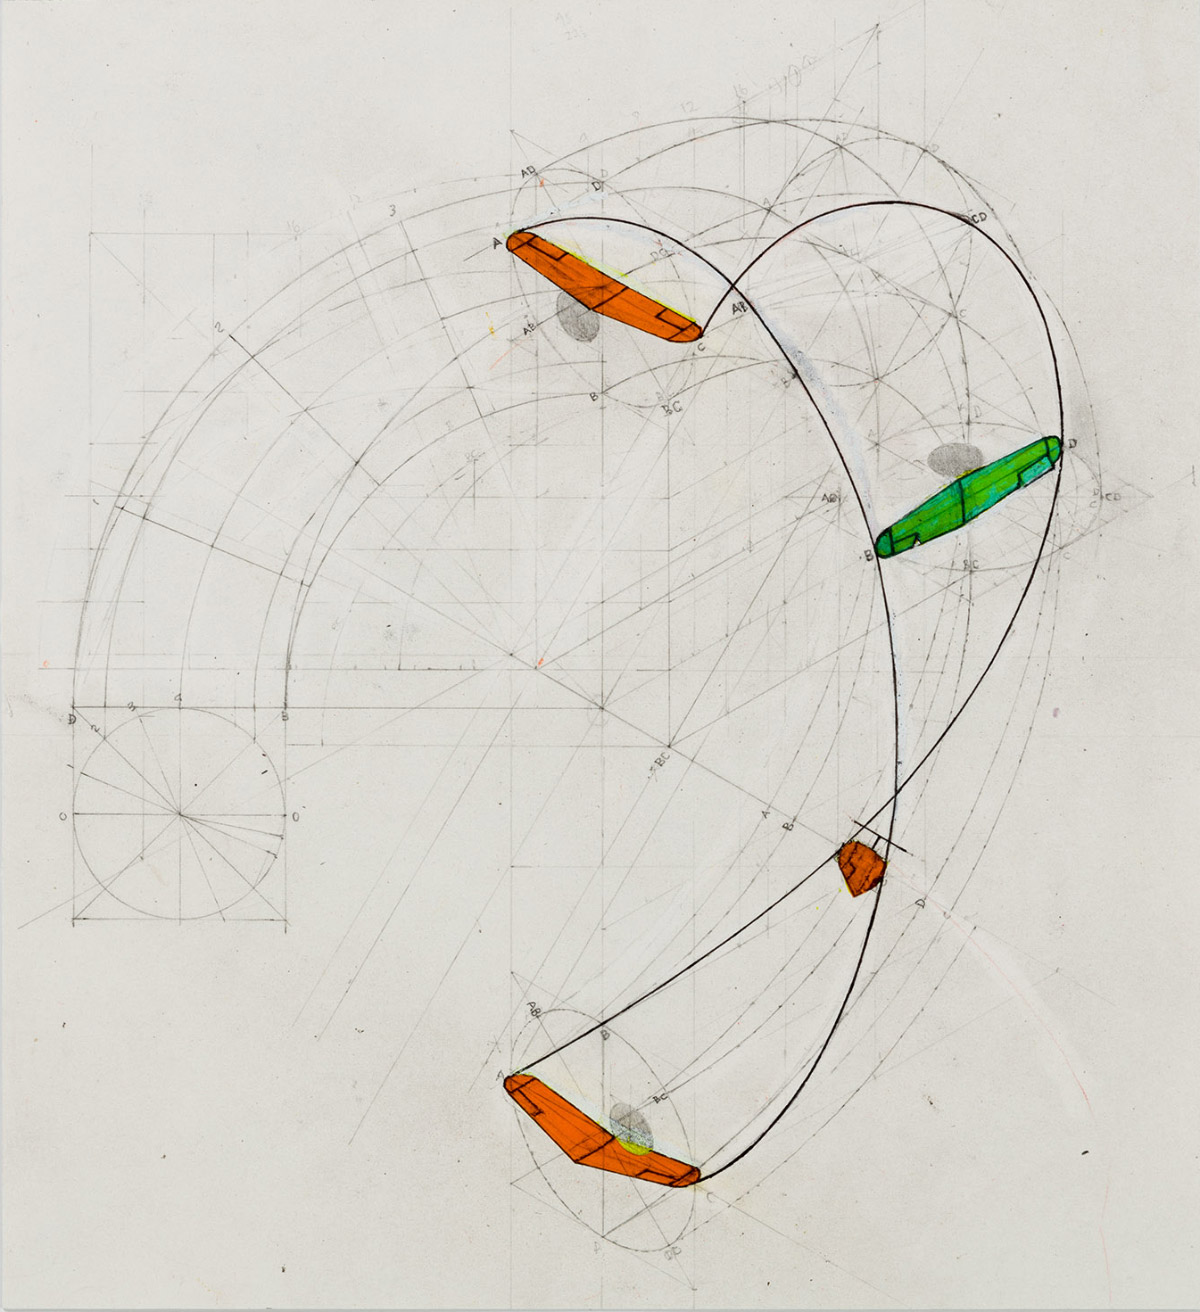 Immelmann Turn (Sin Palace chapter), 2008. Graphite on Arches paper, 28 x 28 cm (11.2 x 11.2 in.) (Michael Webb)